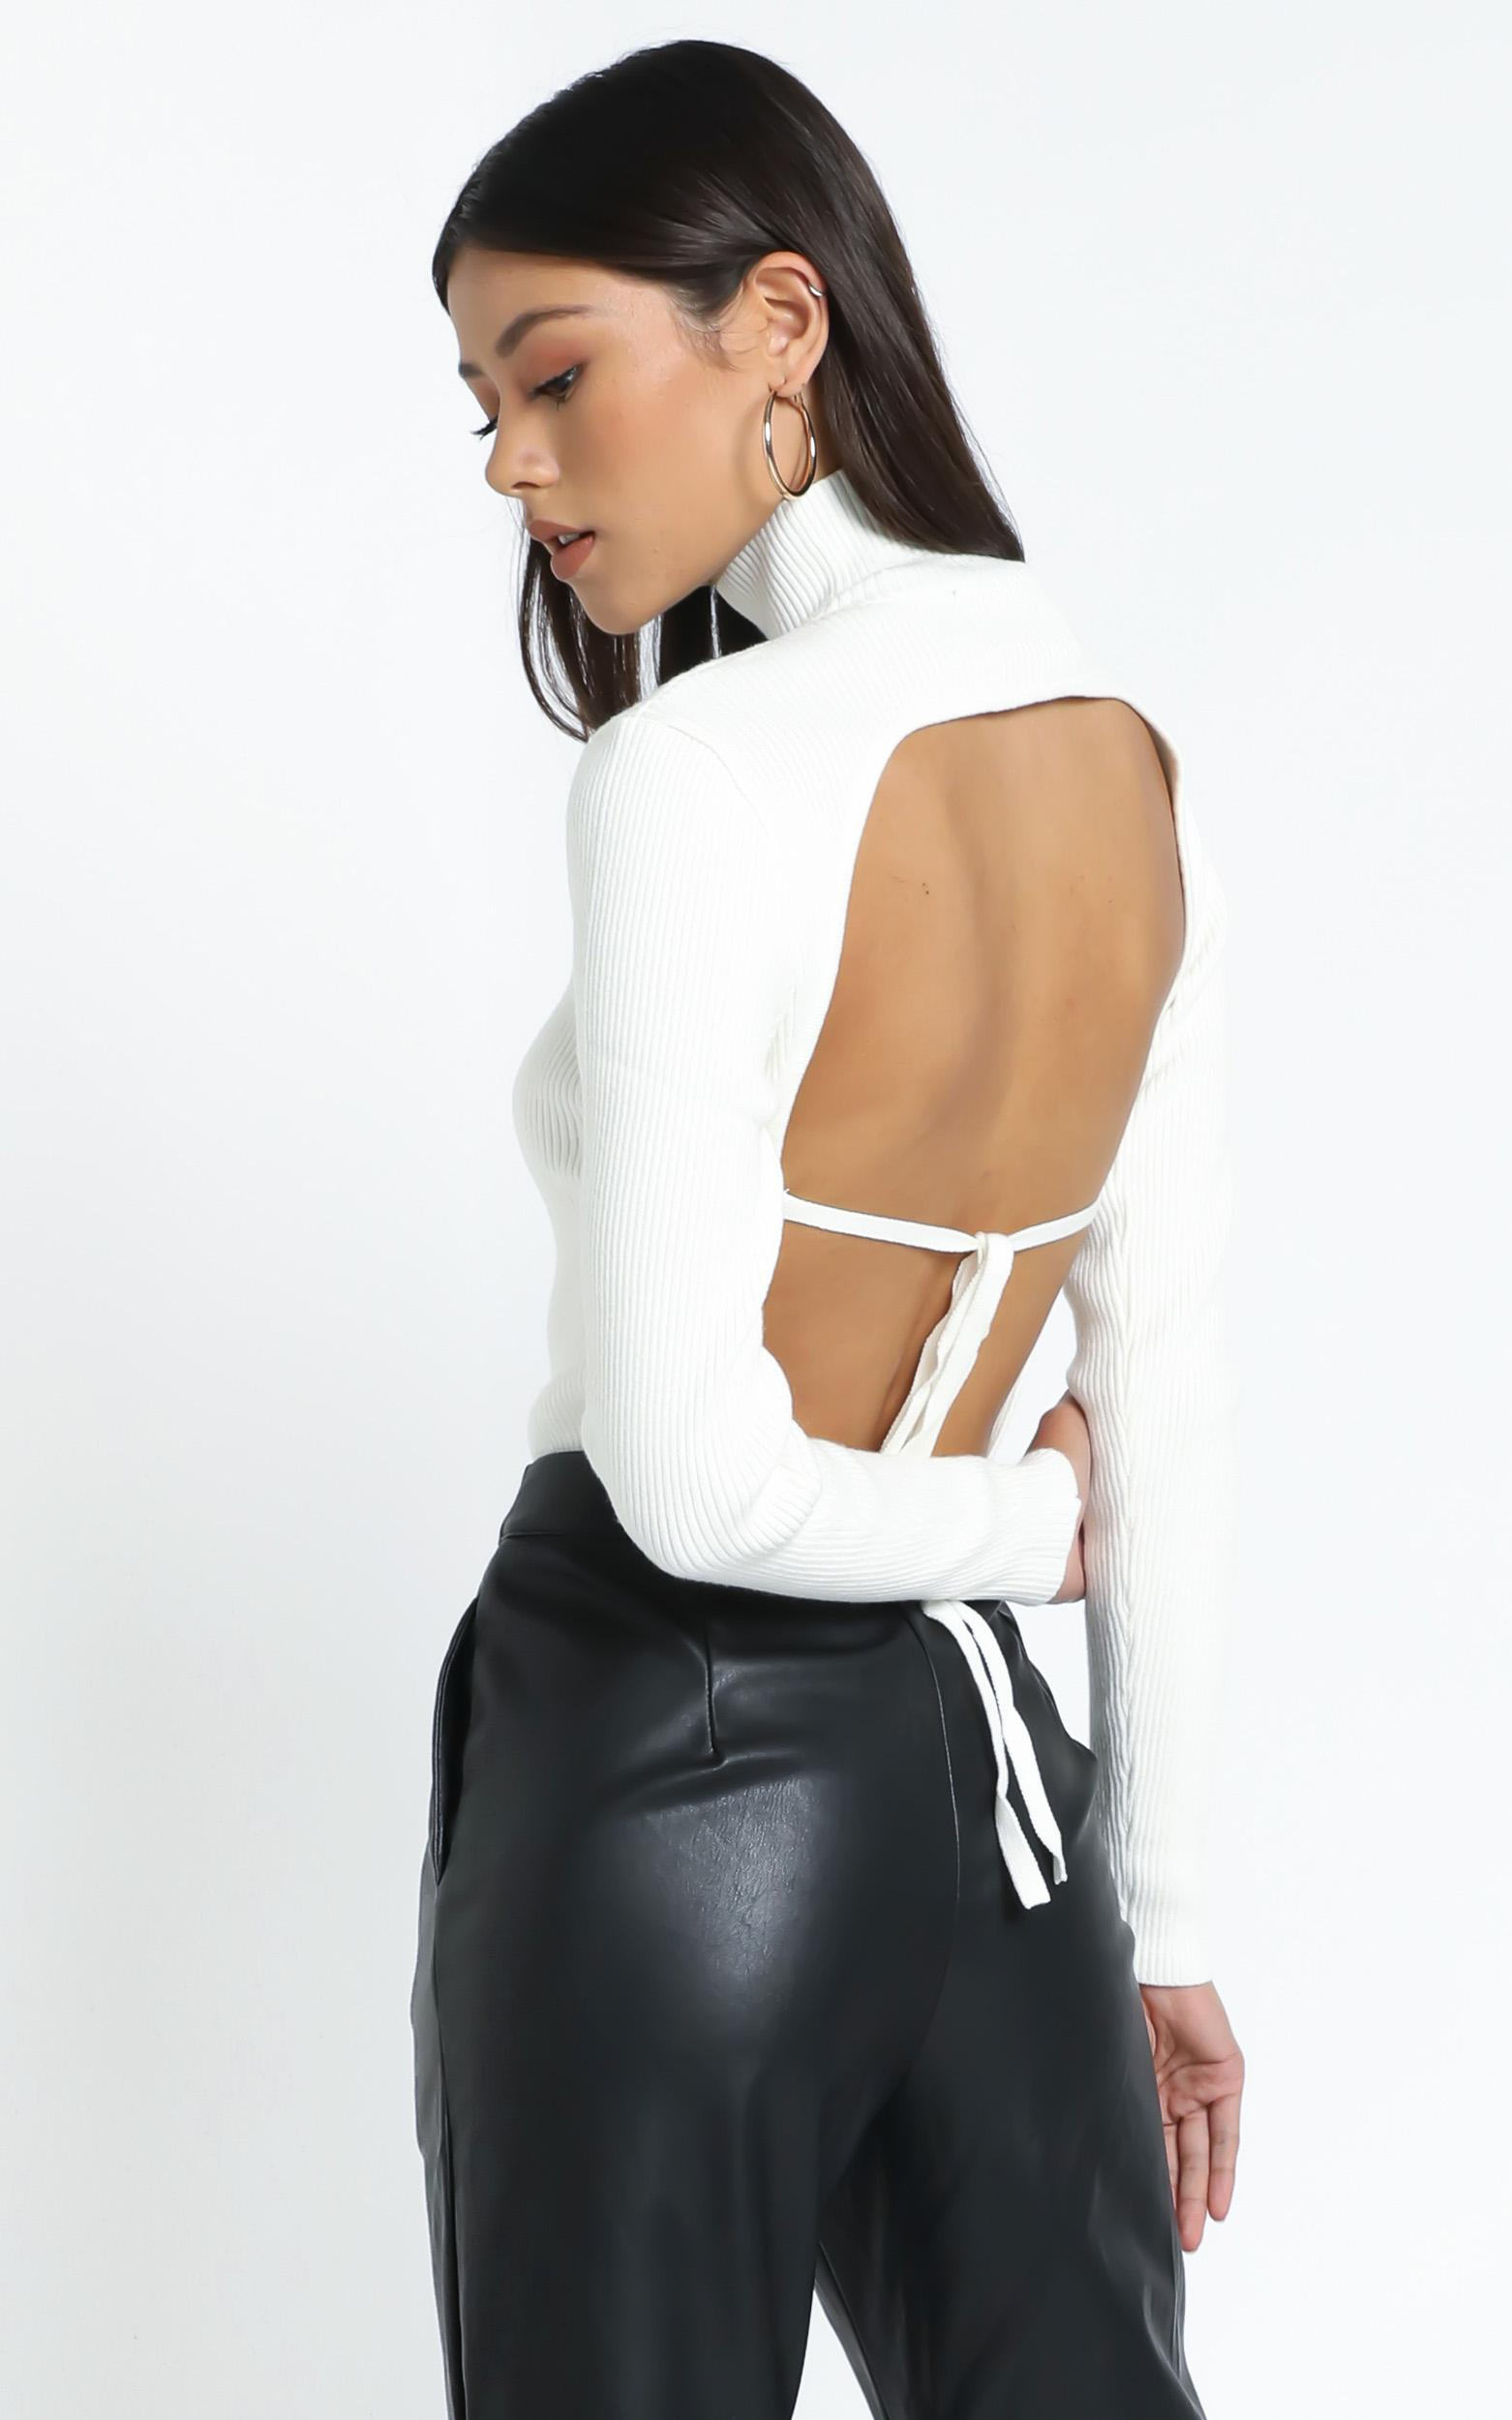 Lioness - Melrose Backless Top in White - 12 (L), White, hi-res image number null